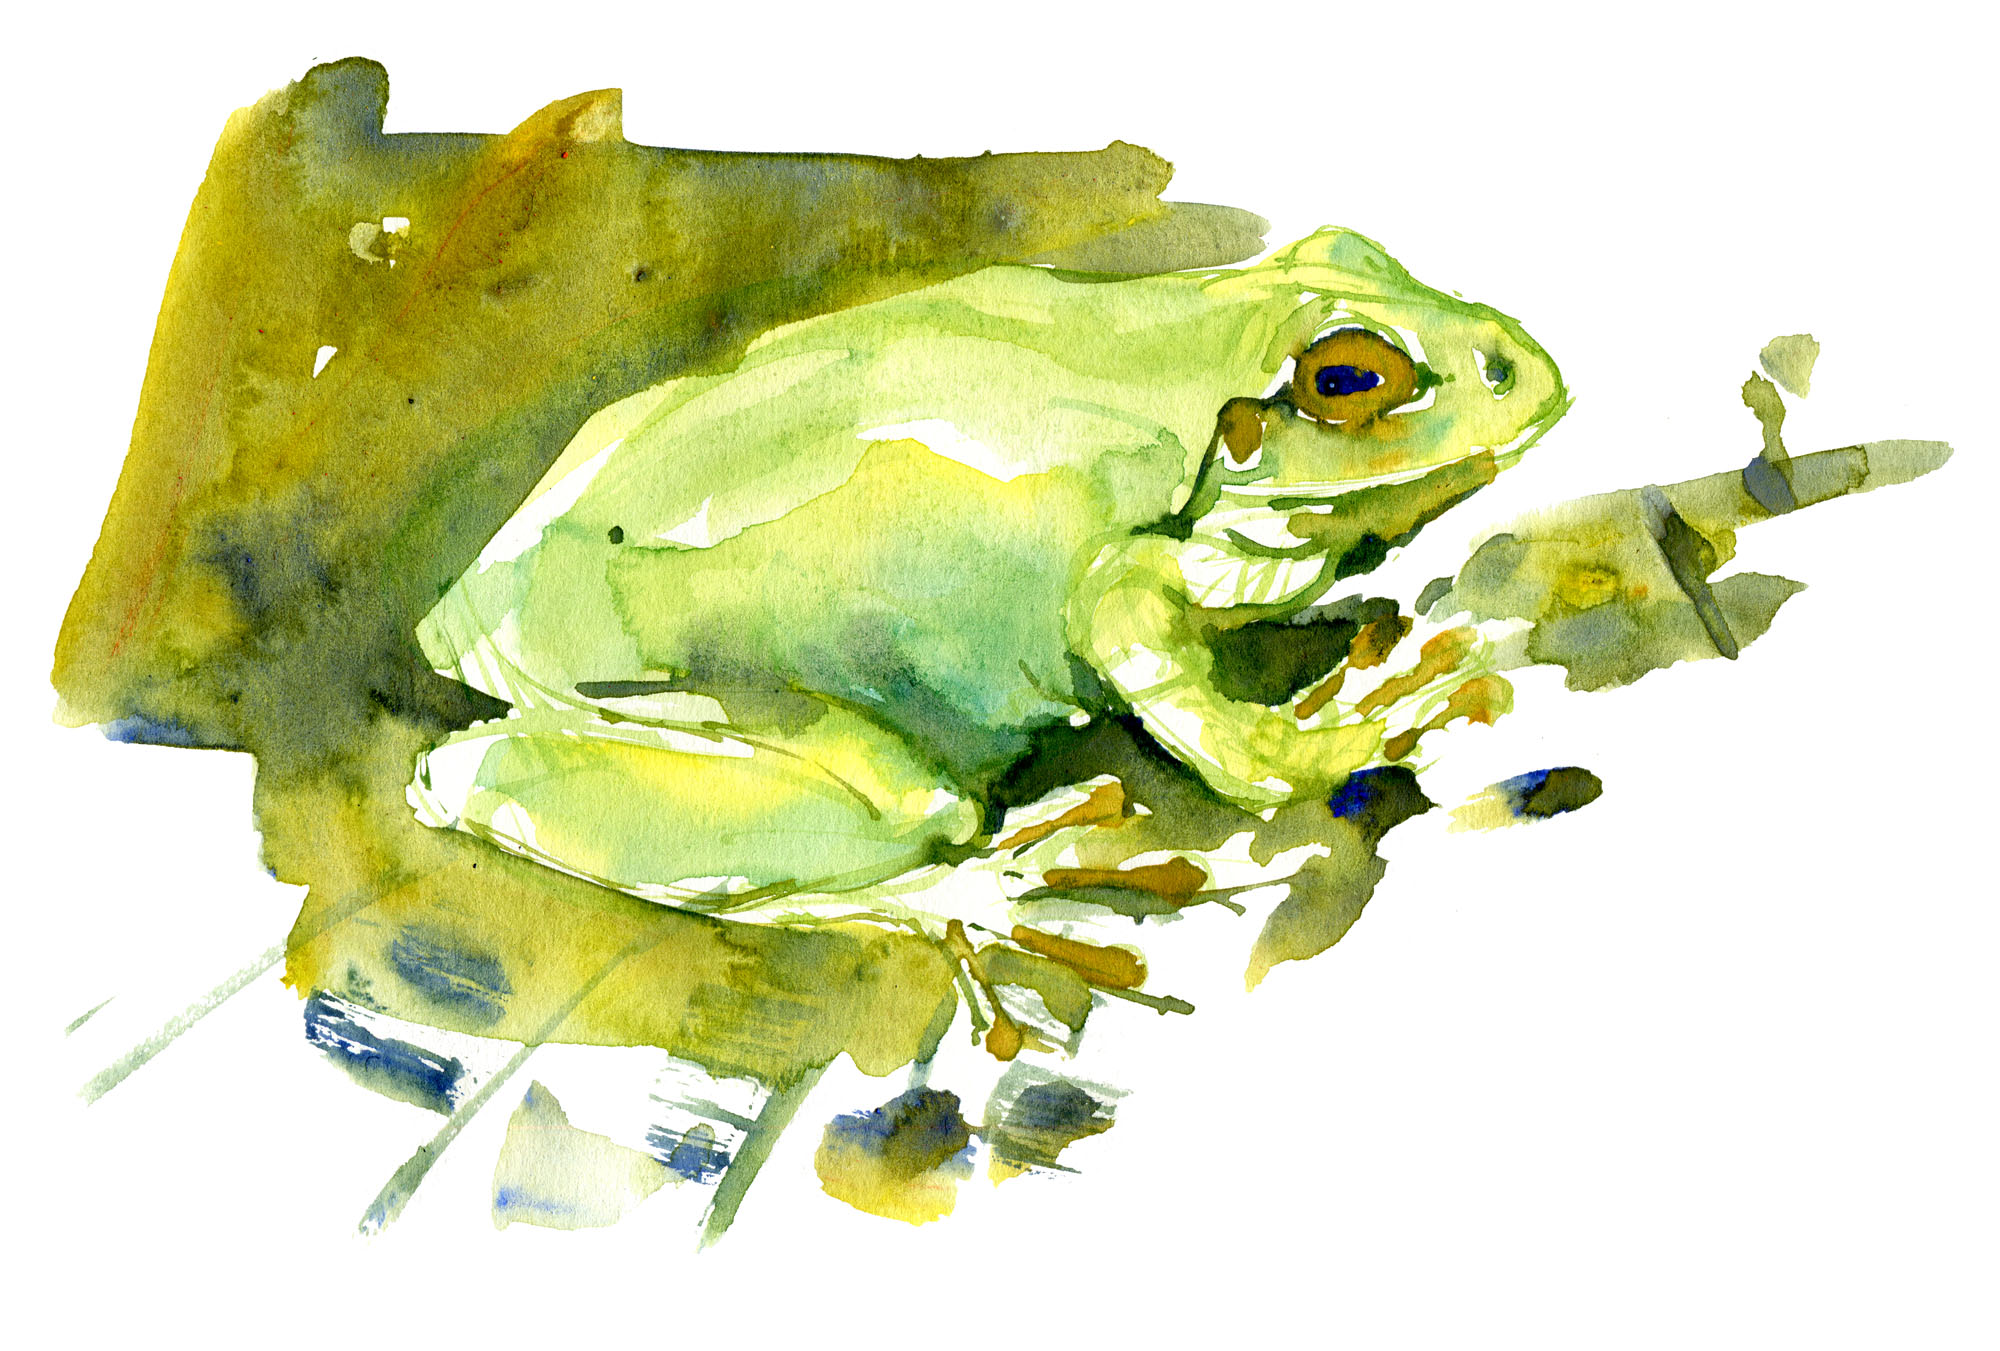 frog-watercolor-by-frits-ahlefeldt